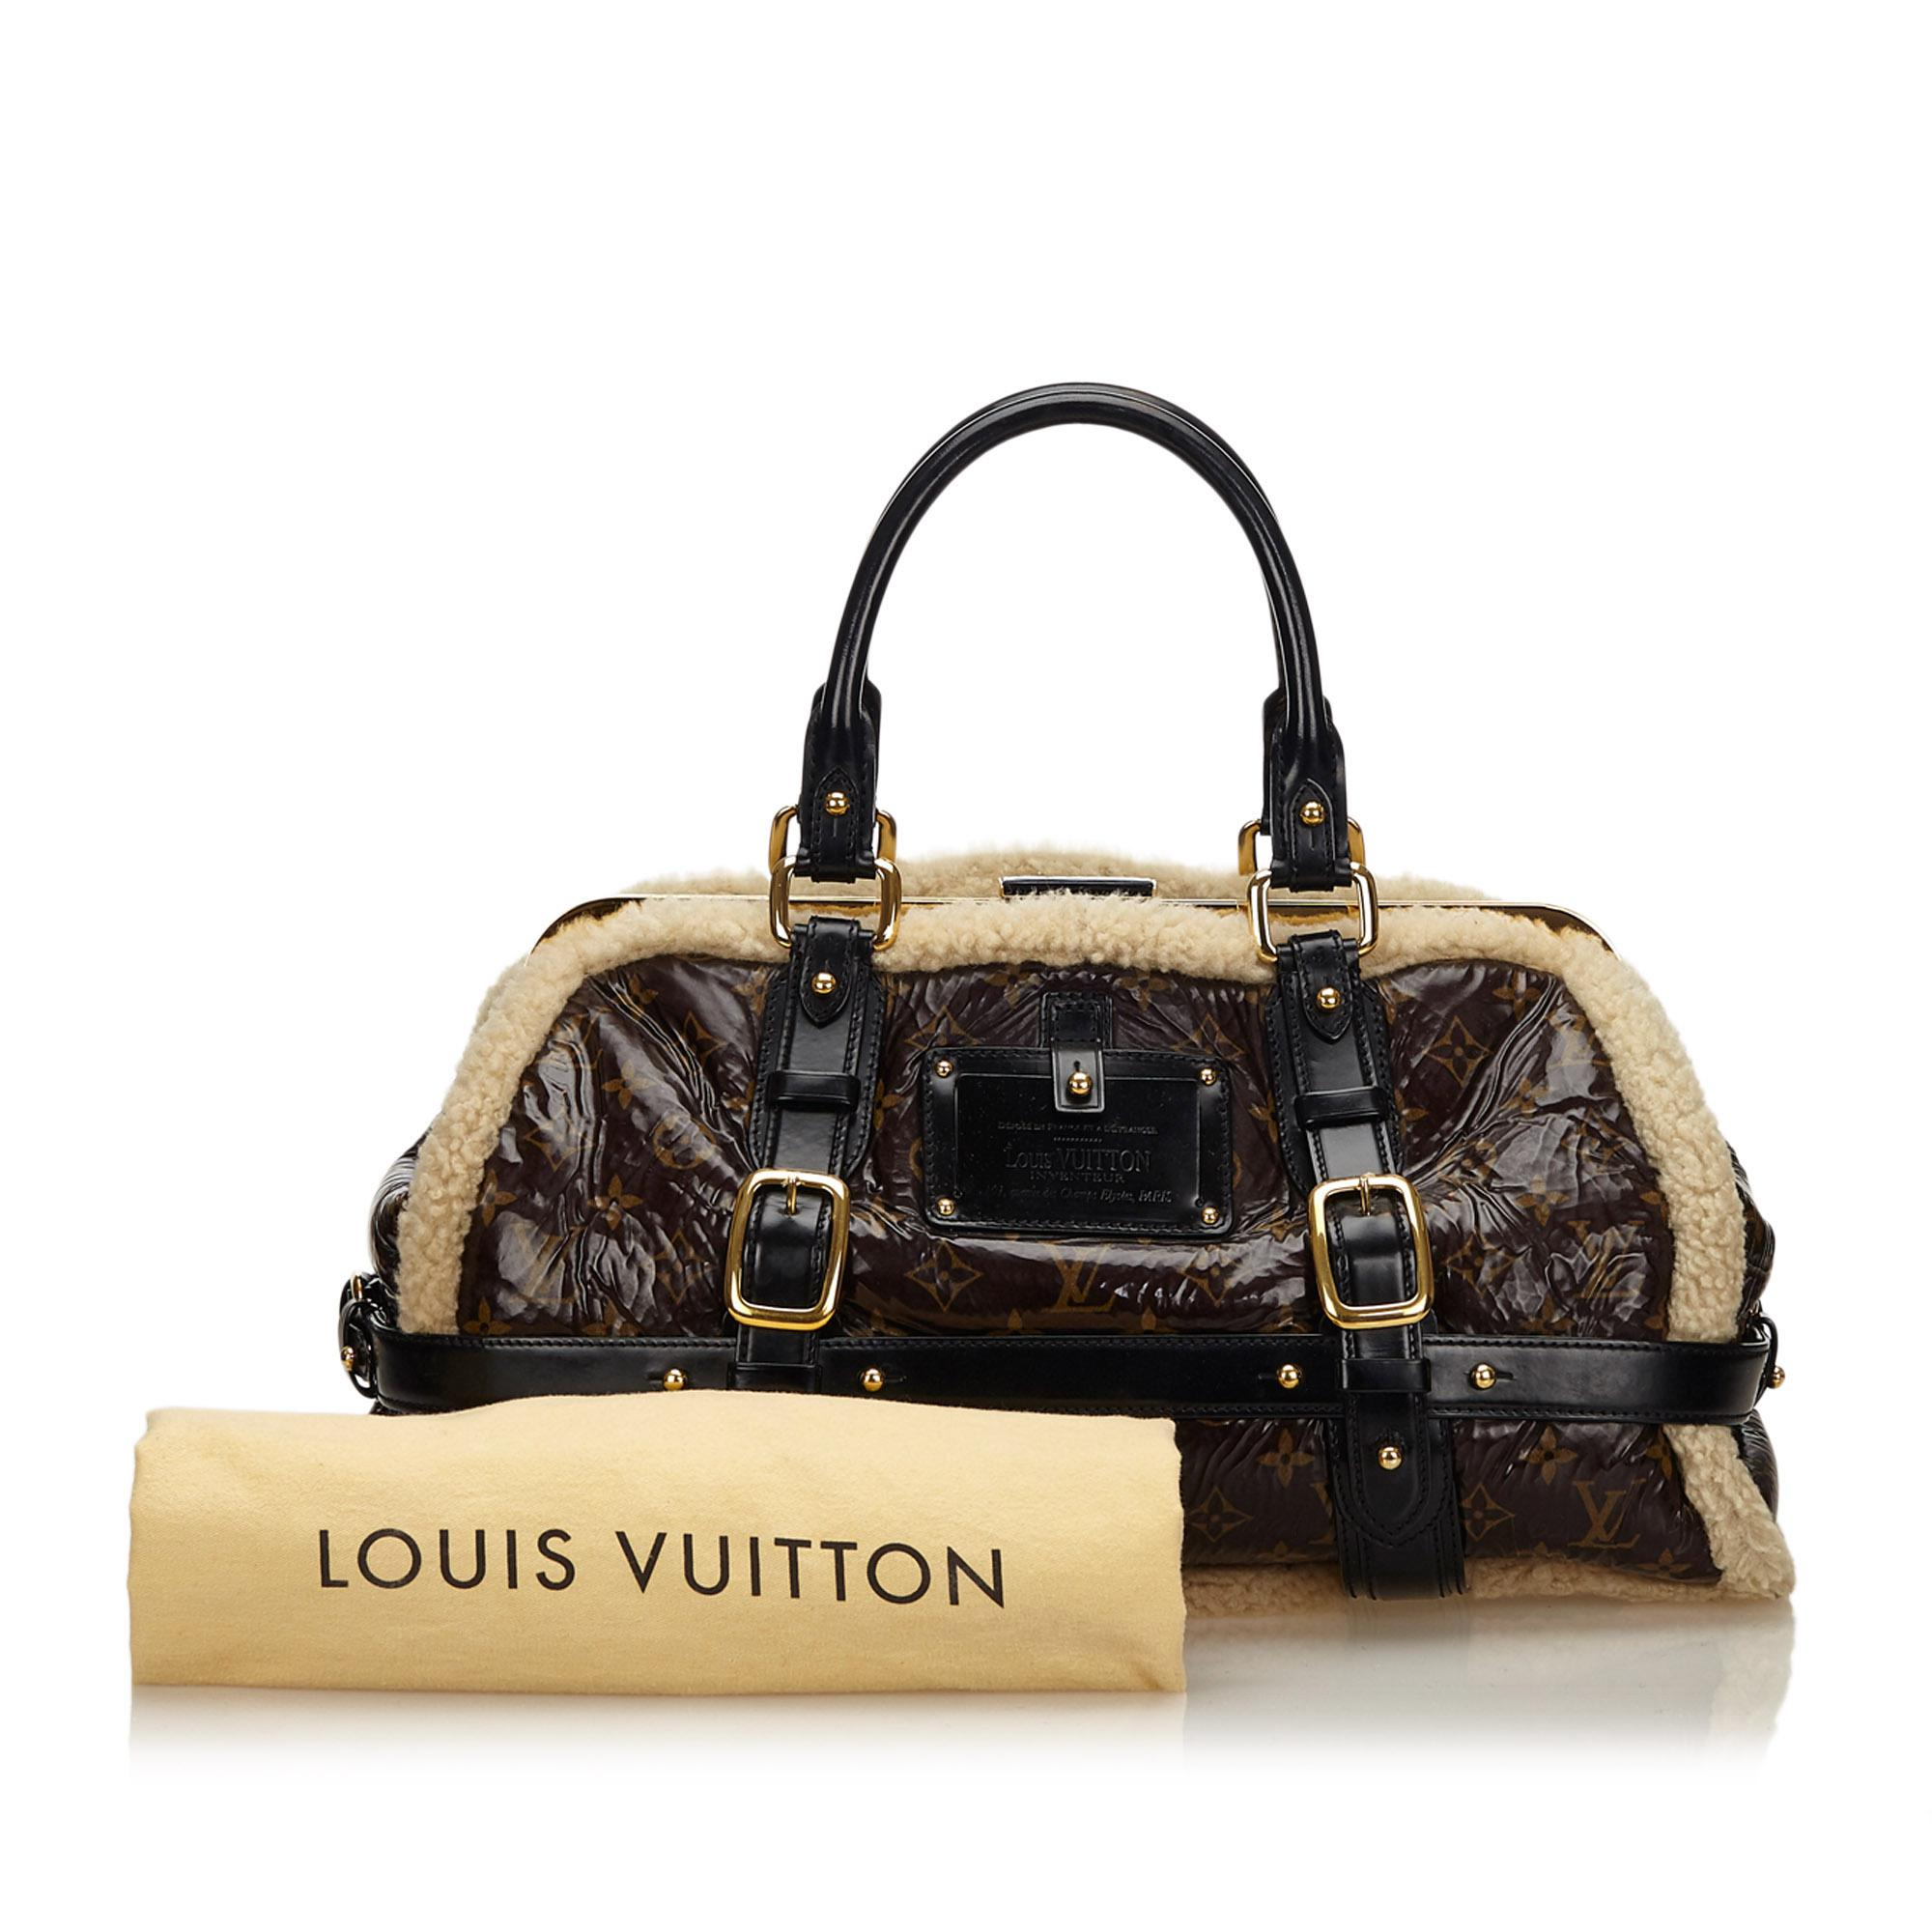 c7d8807b2081 Louis Vuitton Monogram Patent Leather Limited Edition Shearling ...